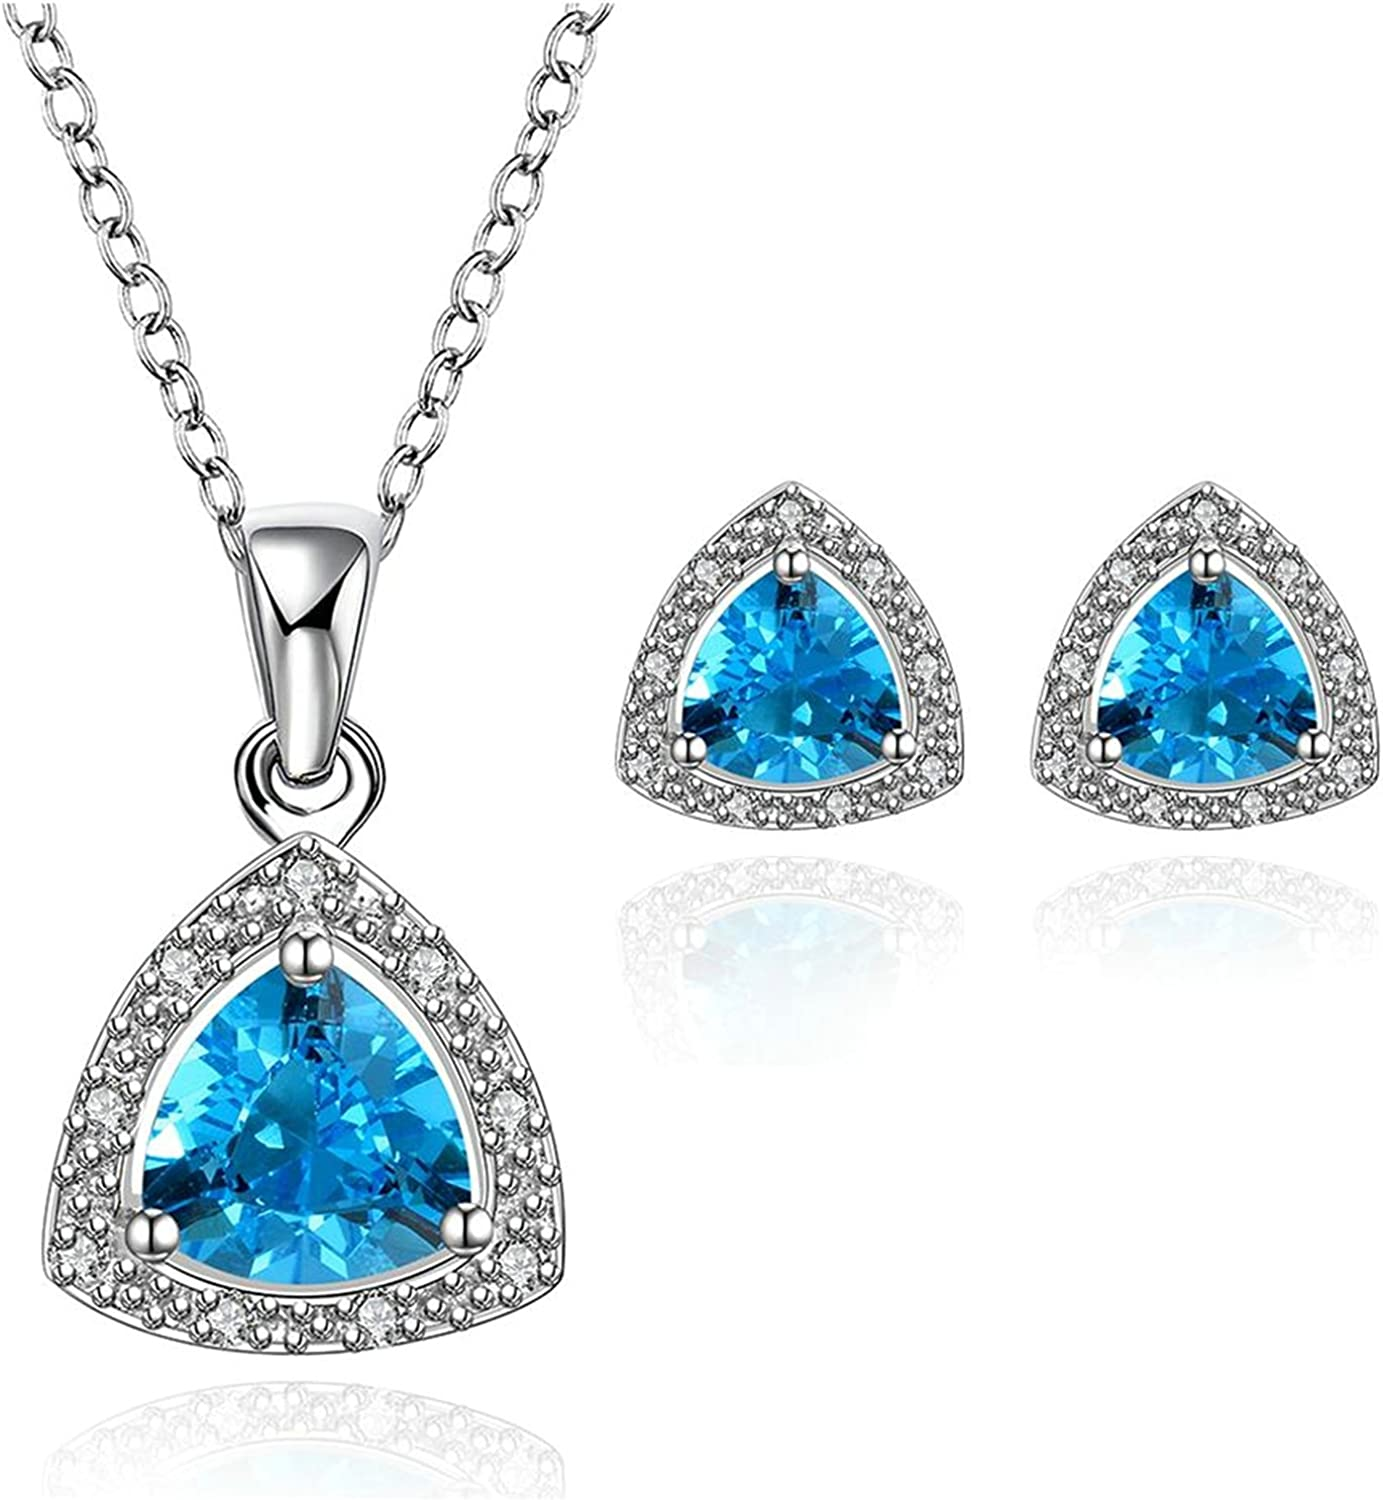 Gnzoe Jewelry Silver Plated Women Earrings Anklet Crystal Inlaid CZ Jewelry Set